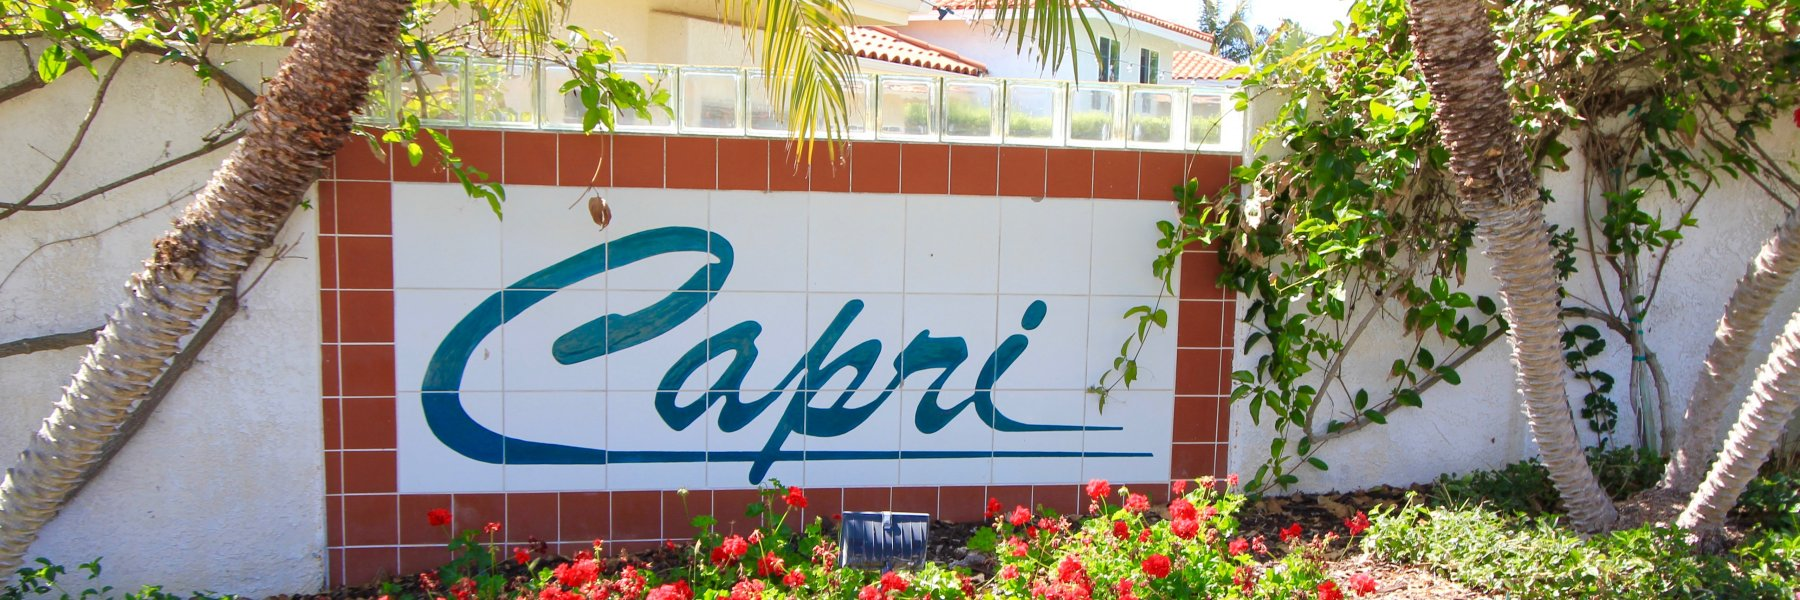 Capri is a community of homes in Carlsbad California